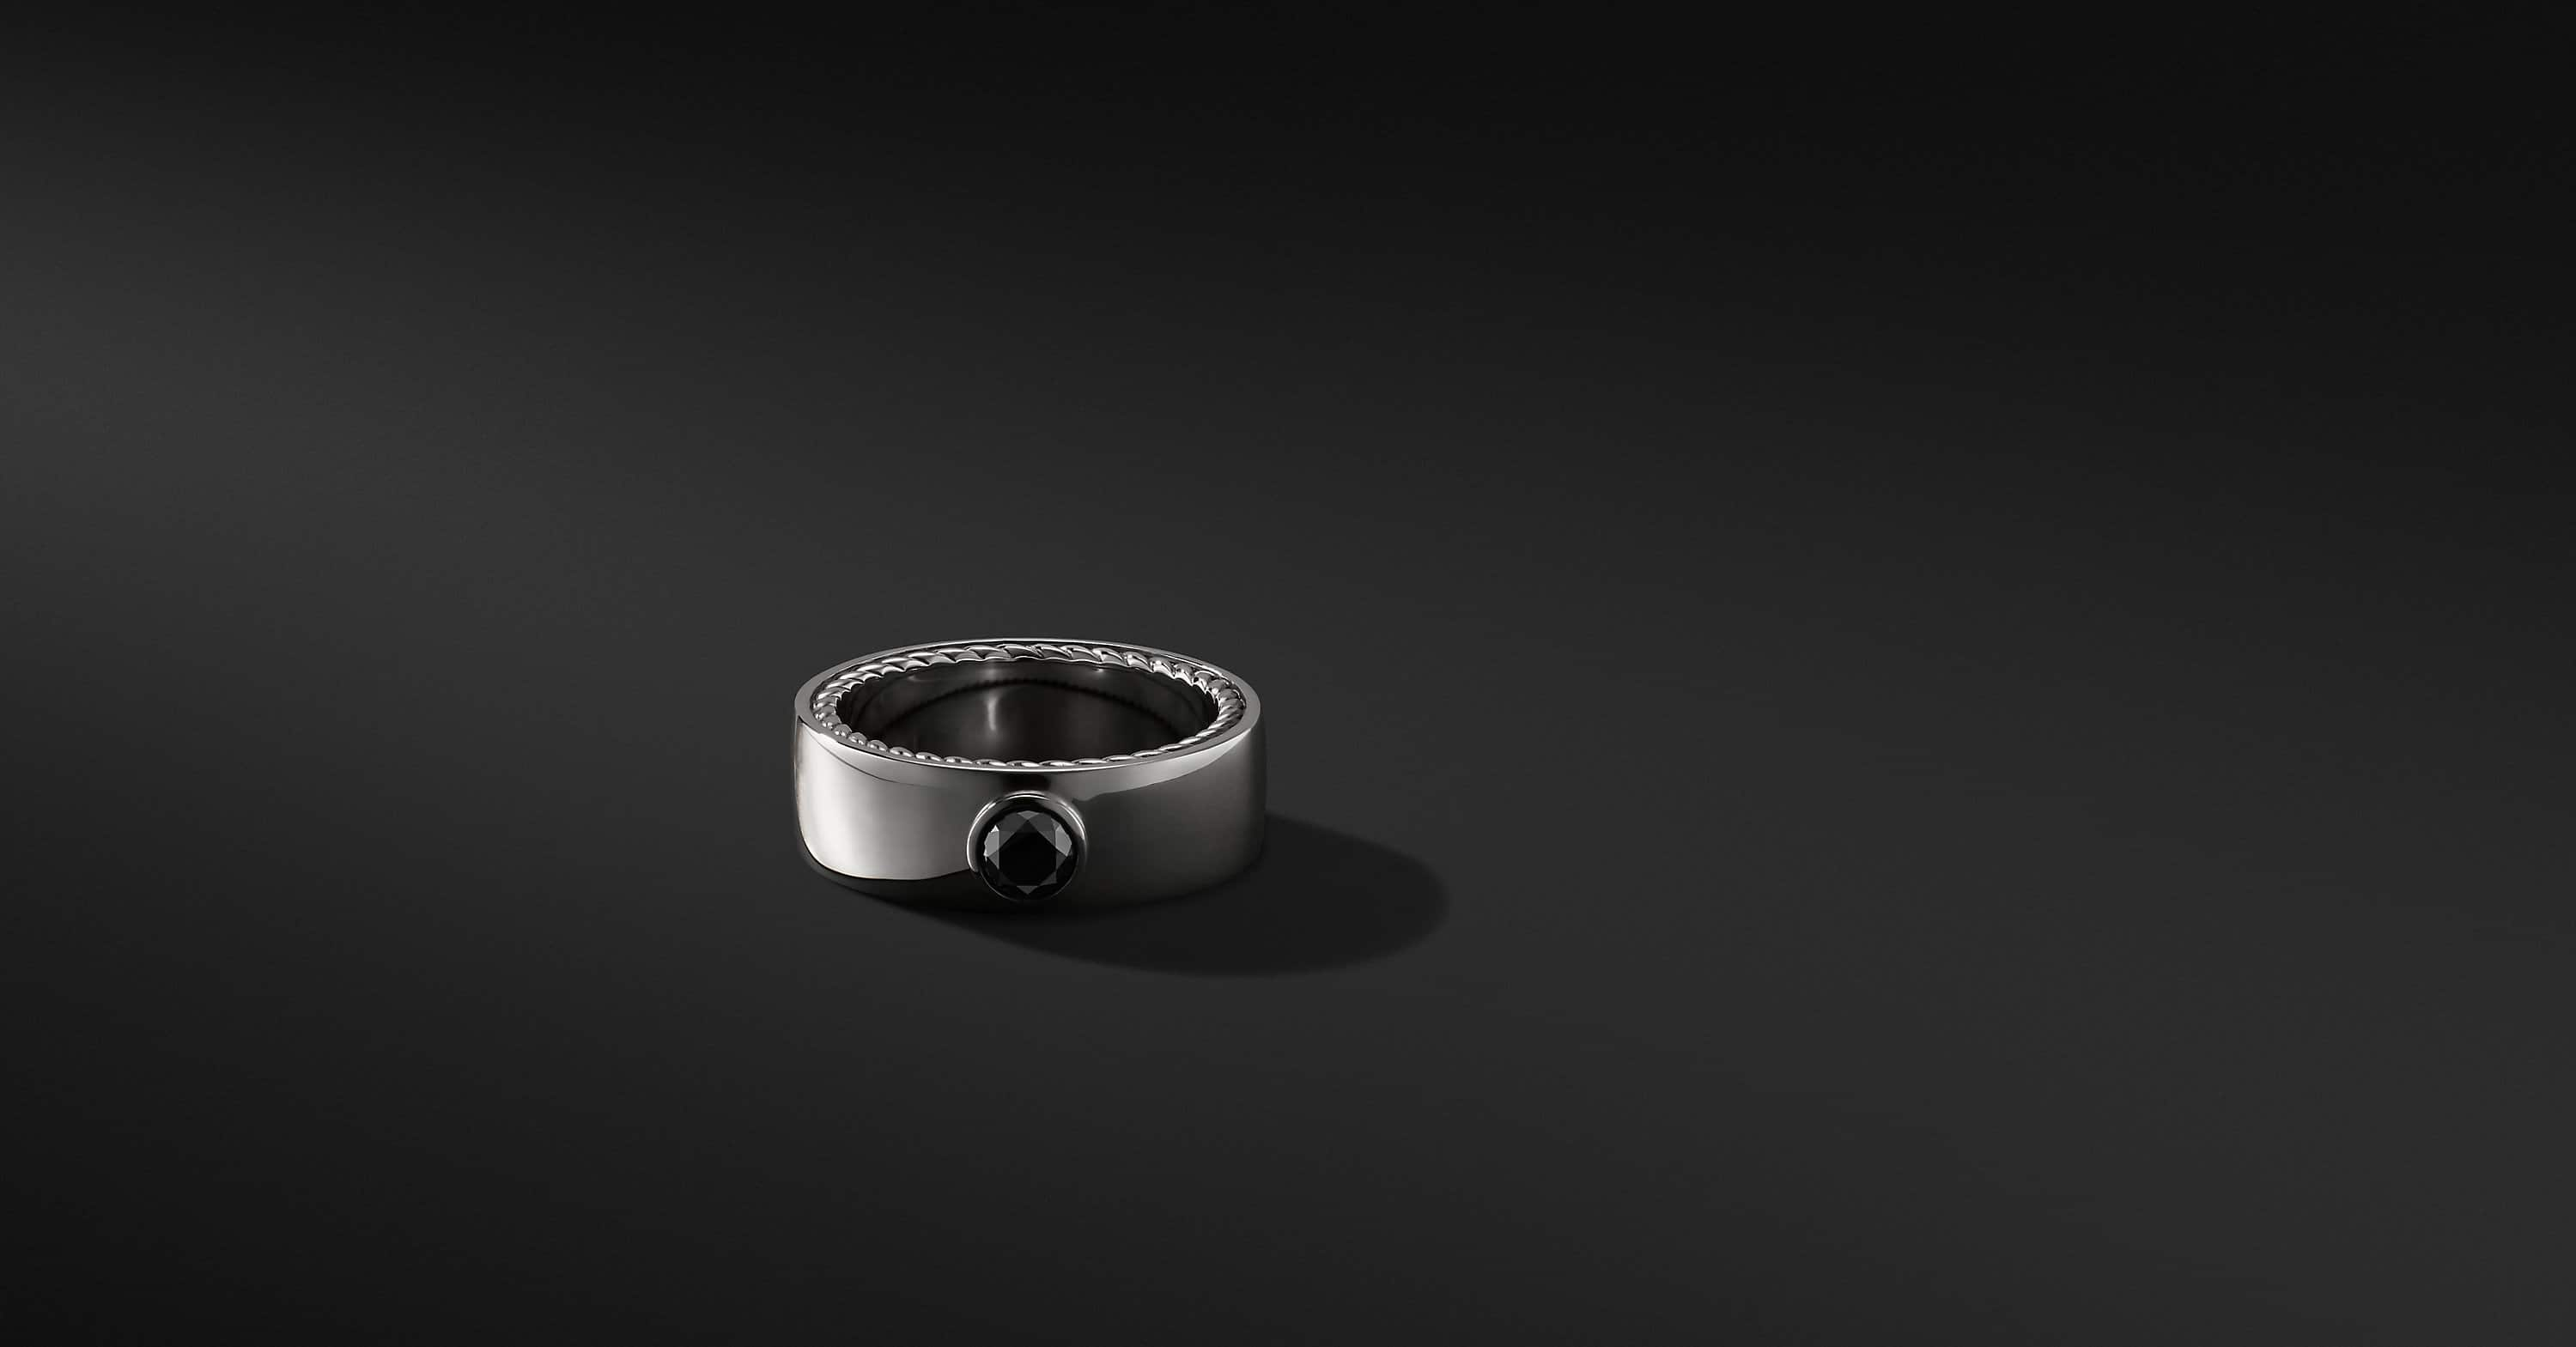 Streamline Band in Sterling Silver with Black Diamond, 8mm